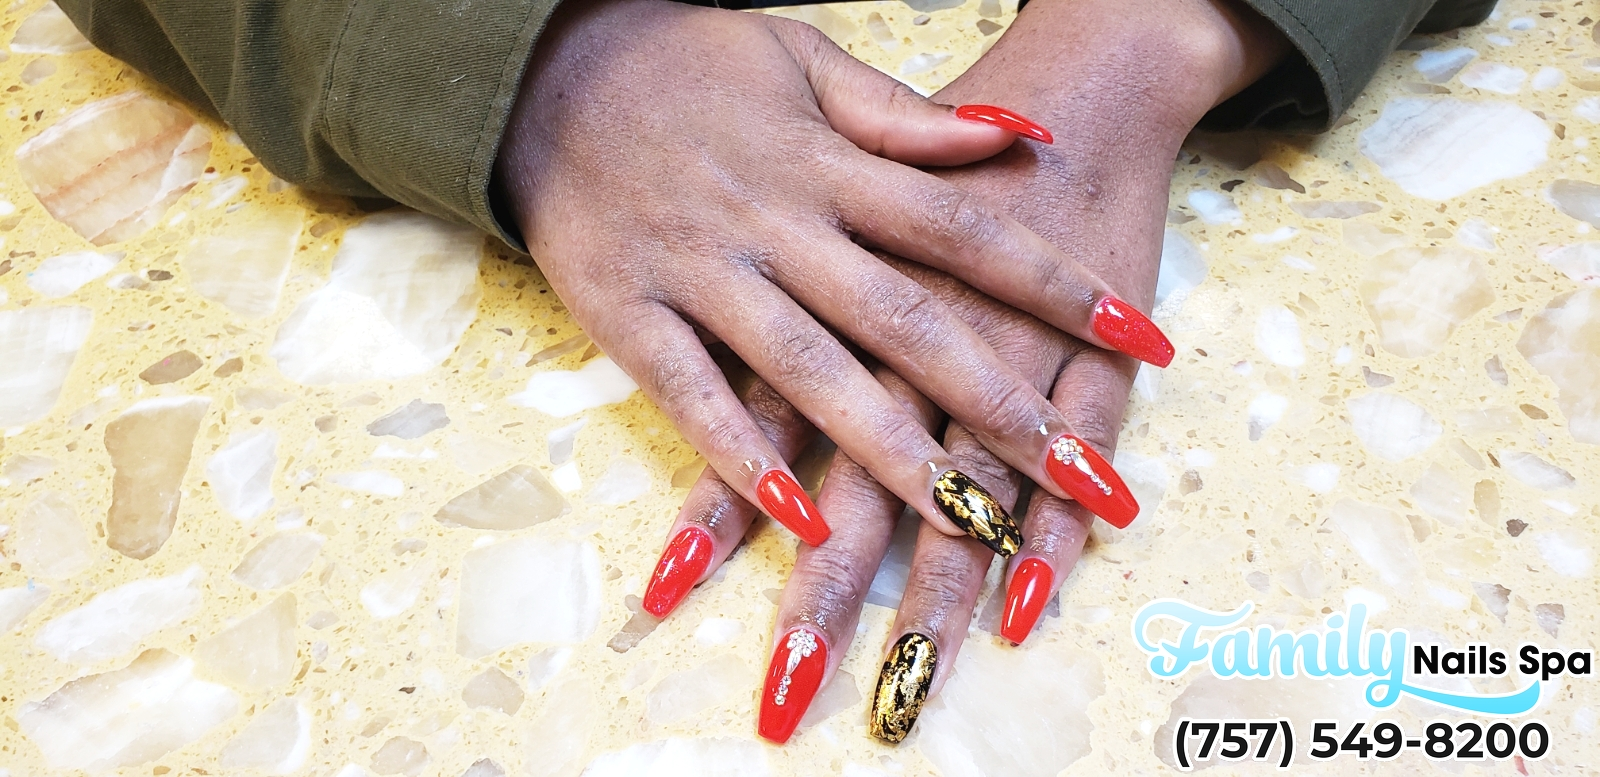 Family Nails Spa | Best nail salon in Chesapeake VA 23320